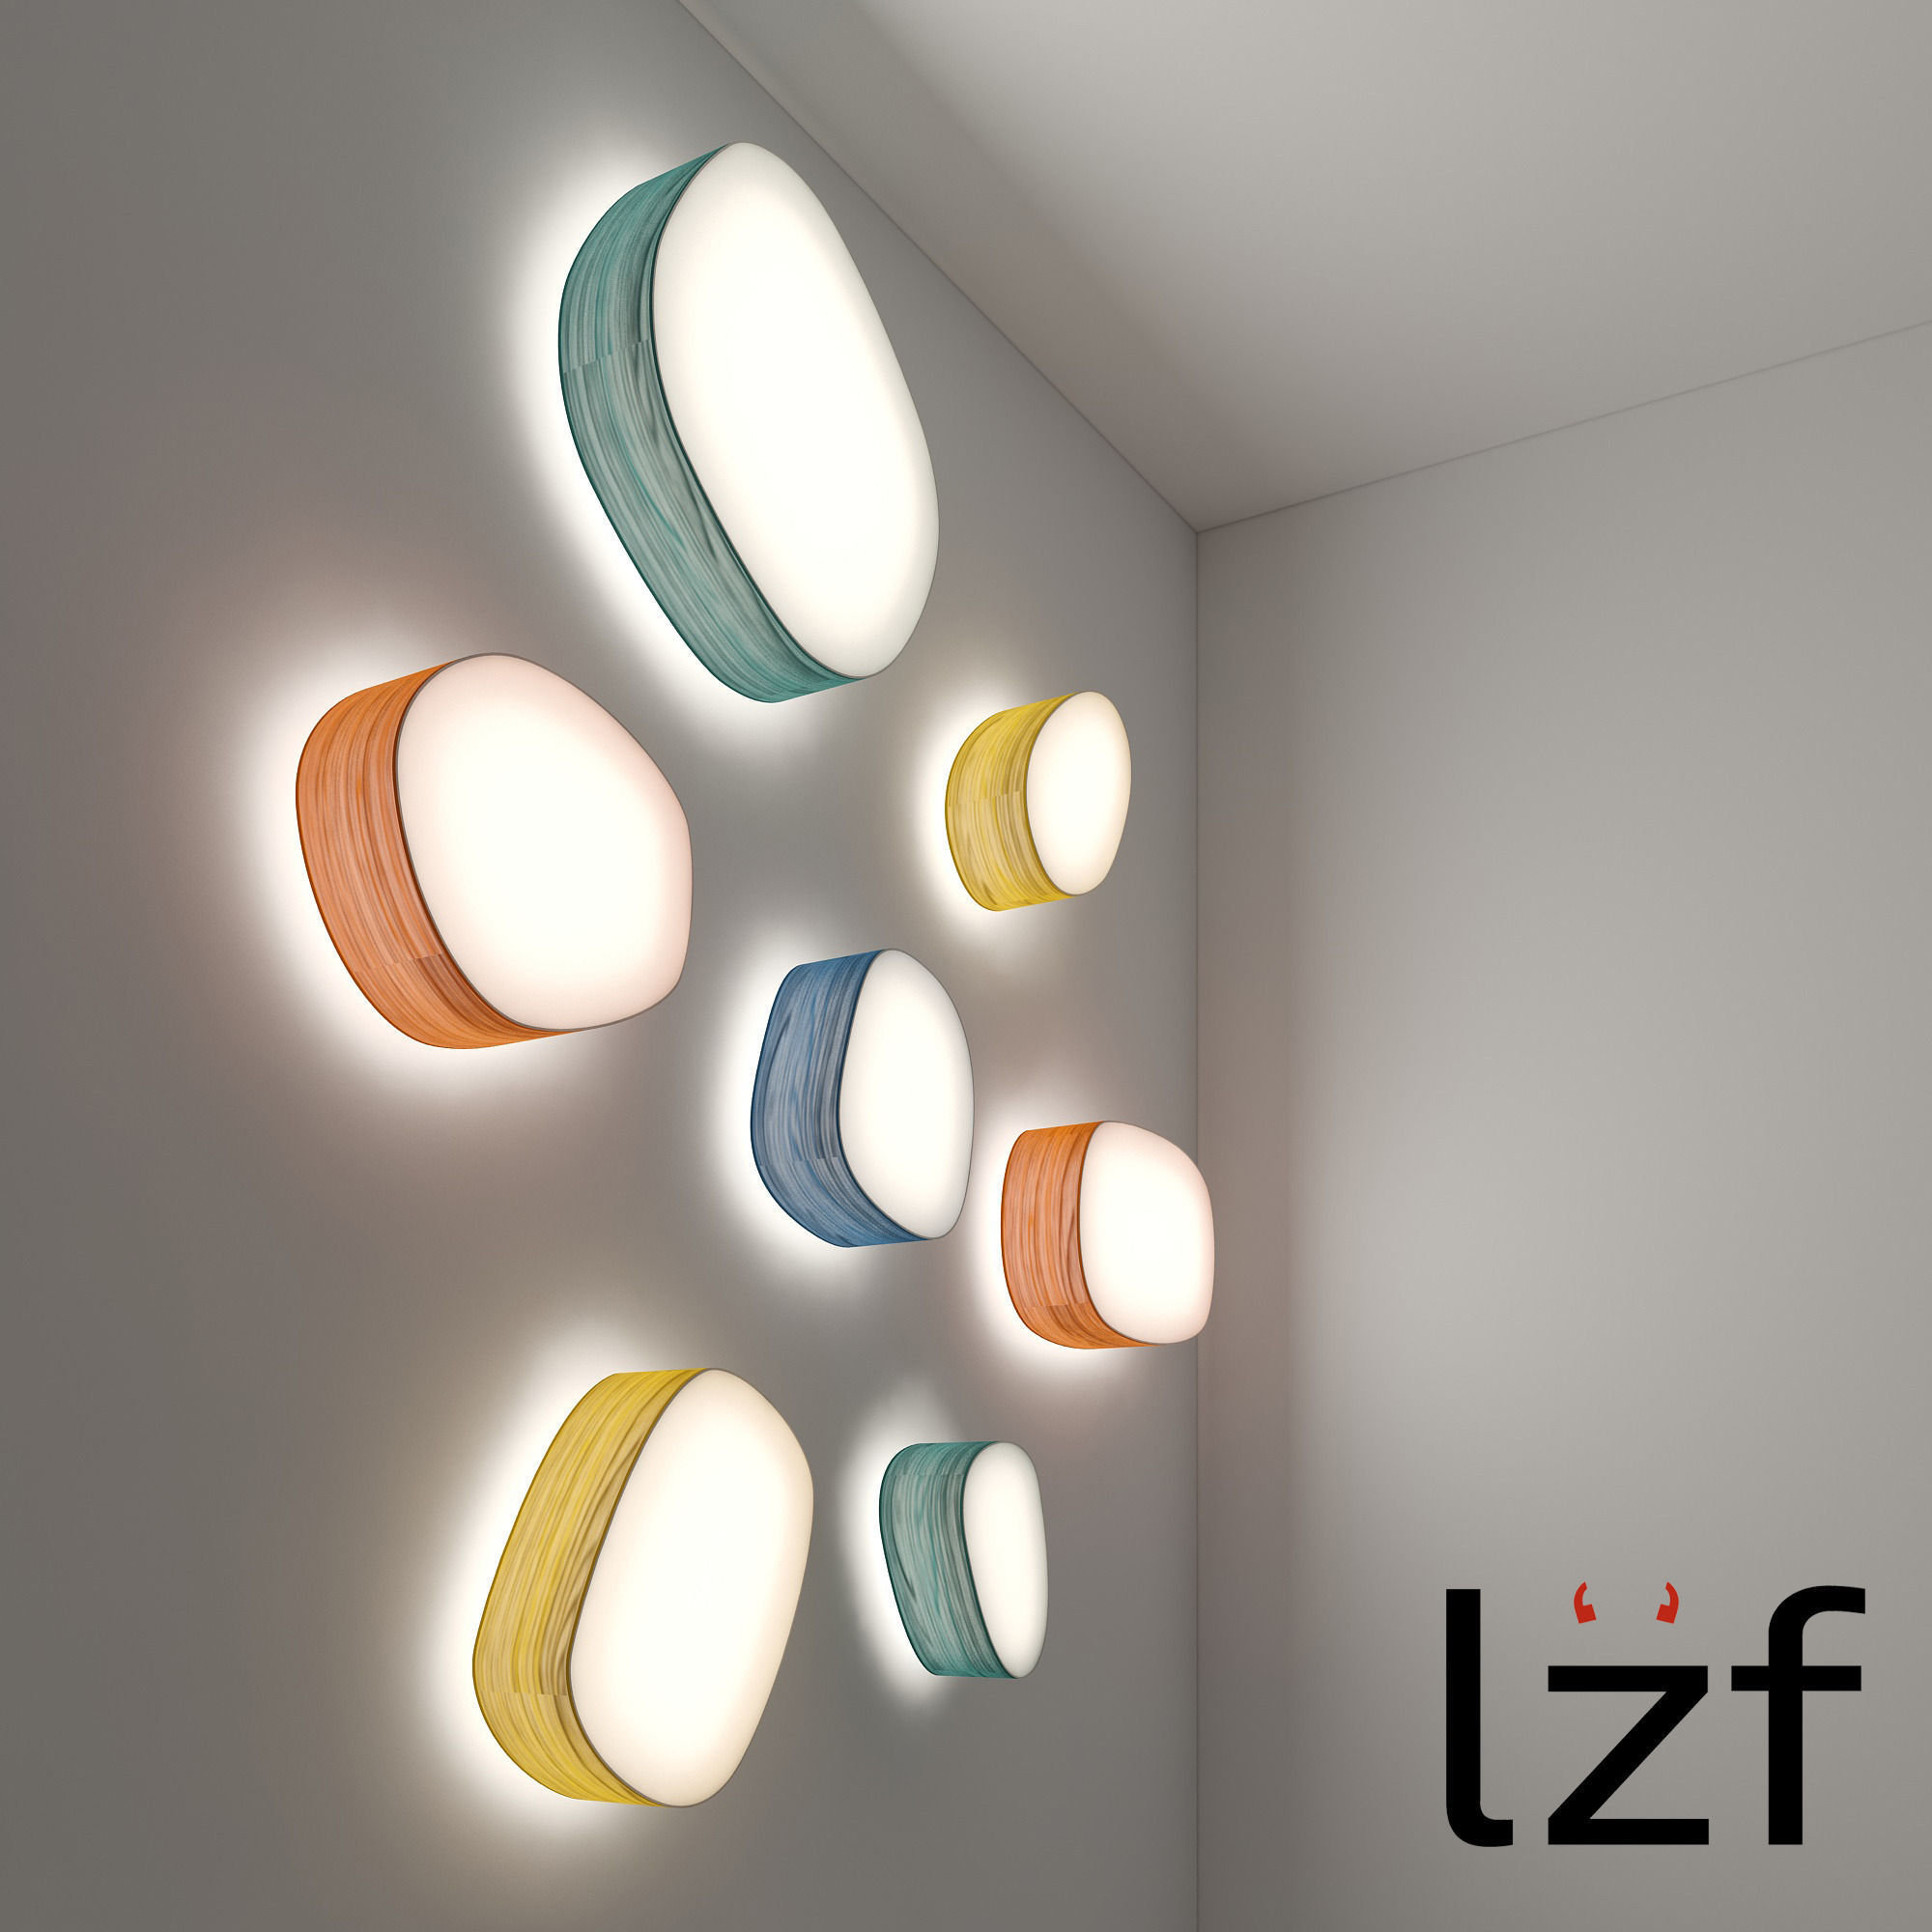 3d Model Lzf Ceiling And Wall Light Cgtrader